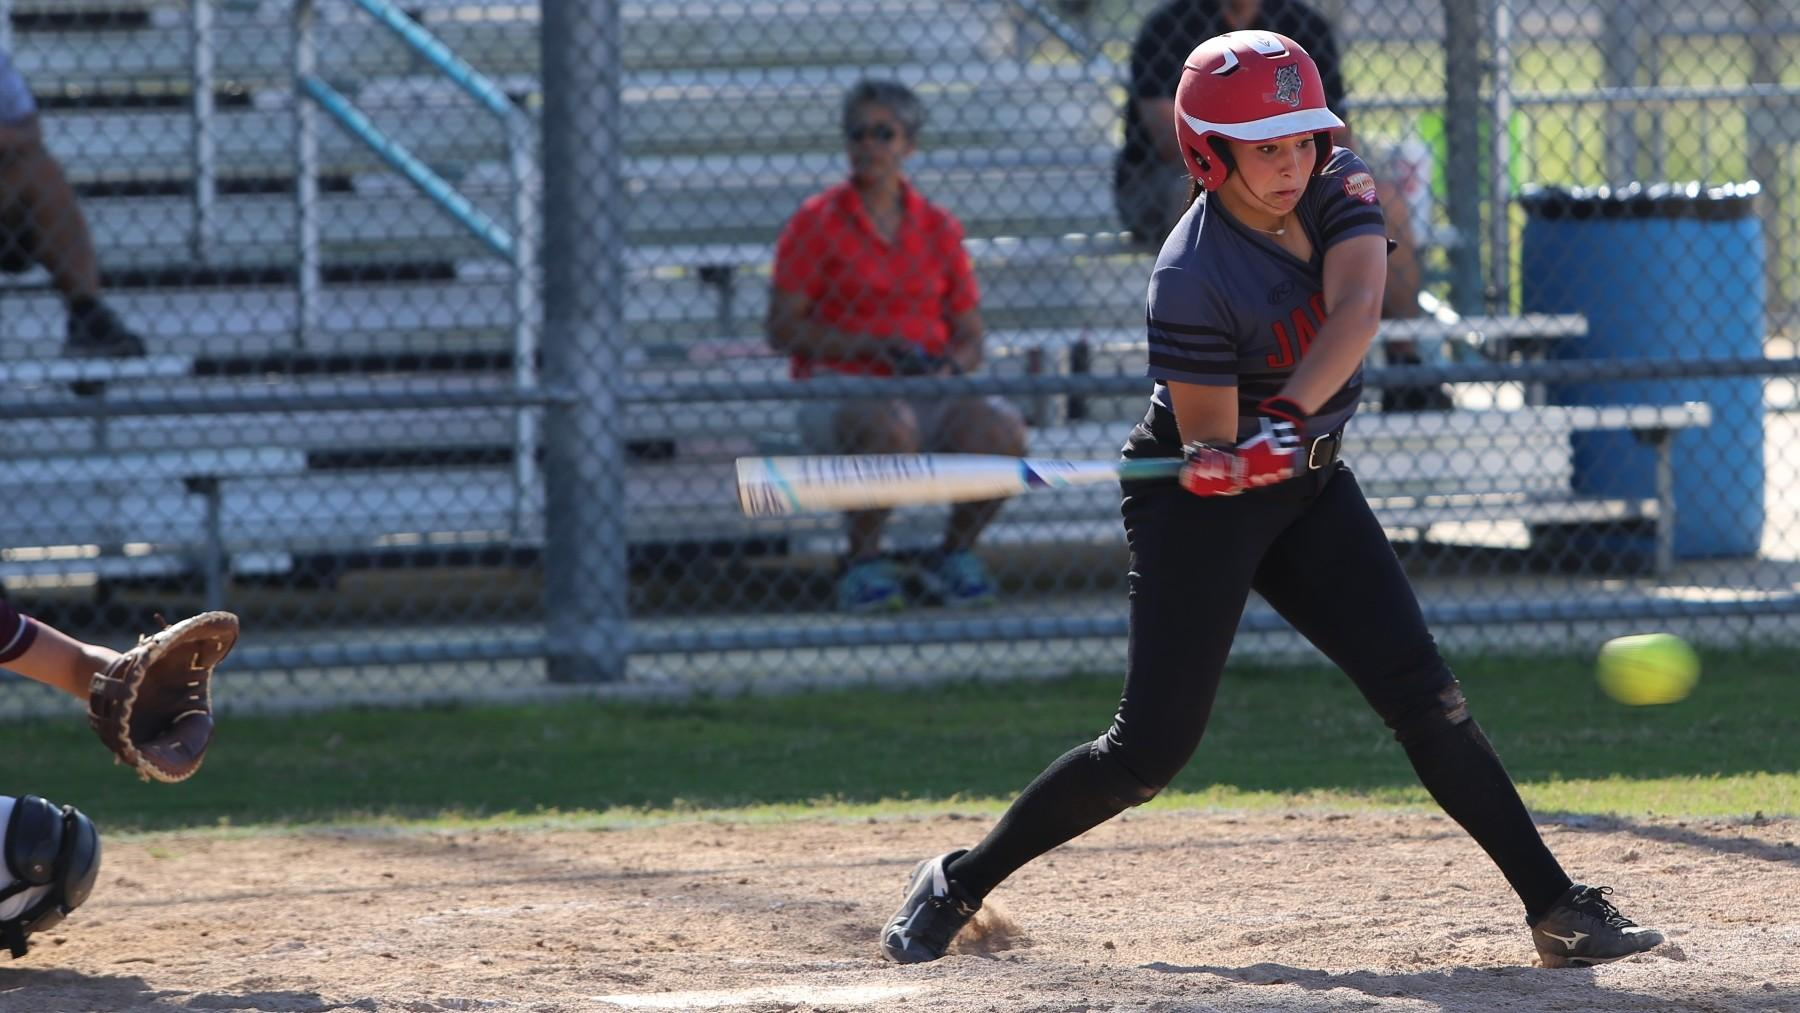 UHV's Emily Flores has been named the RRAC Softball Player of the Week for the week of April 3-9.